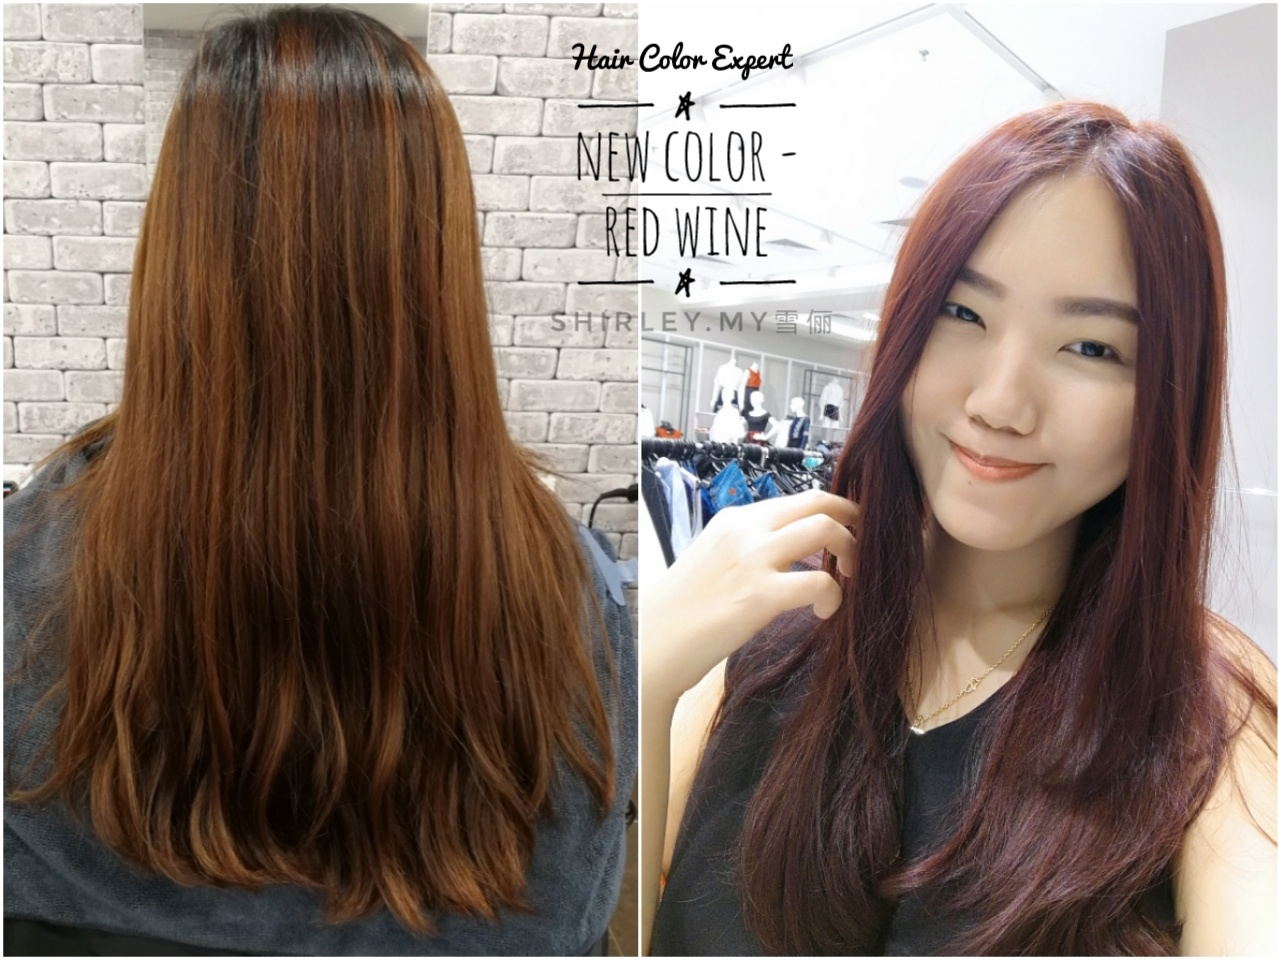 Hair Coloring Done In Less Than Two Hours With 7 Steps